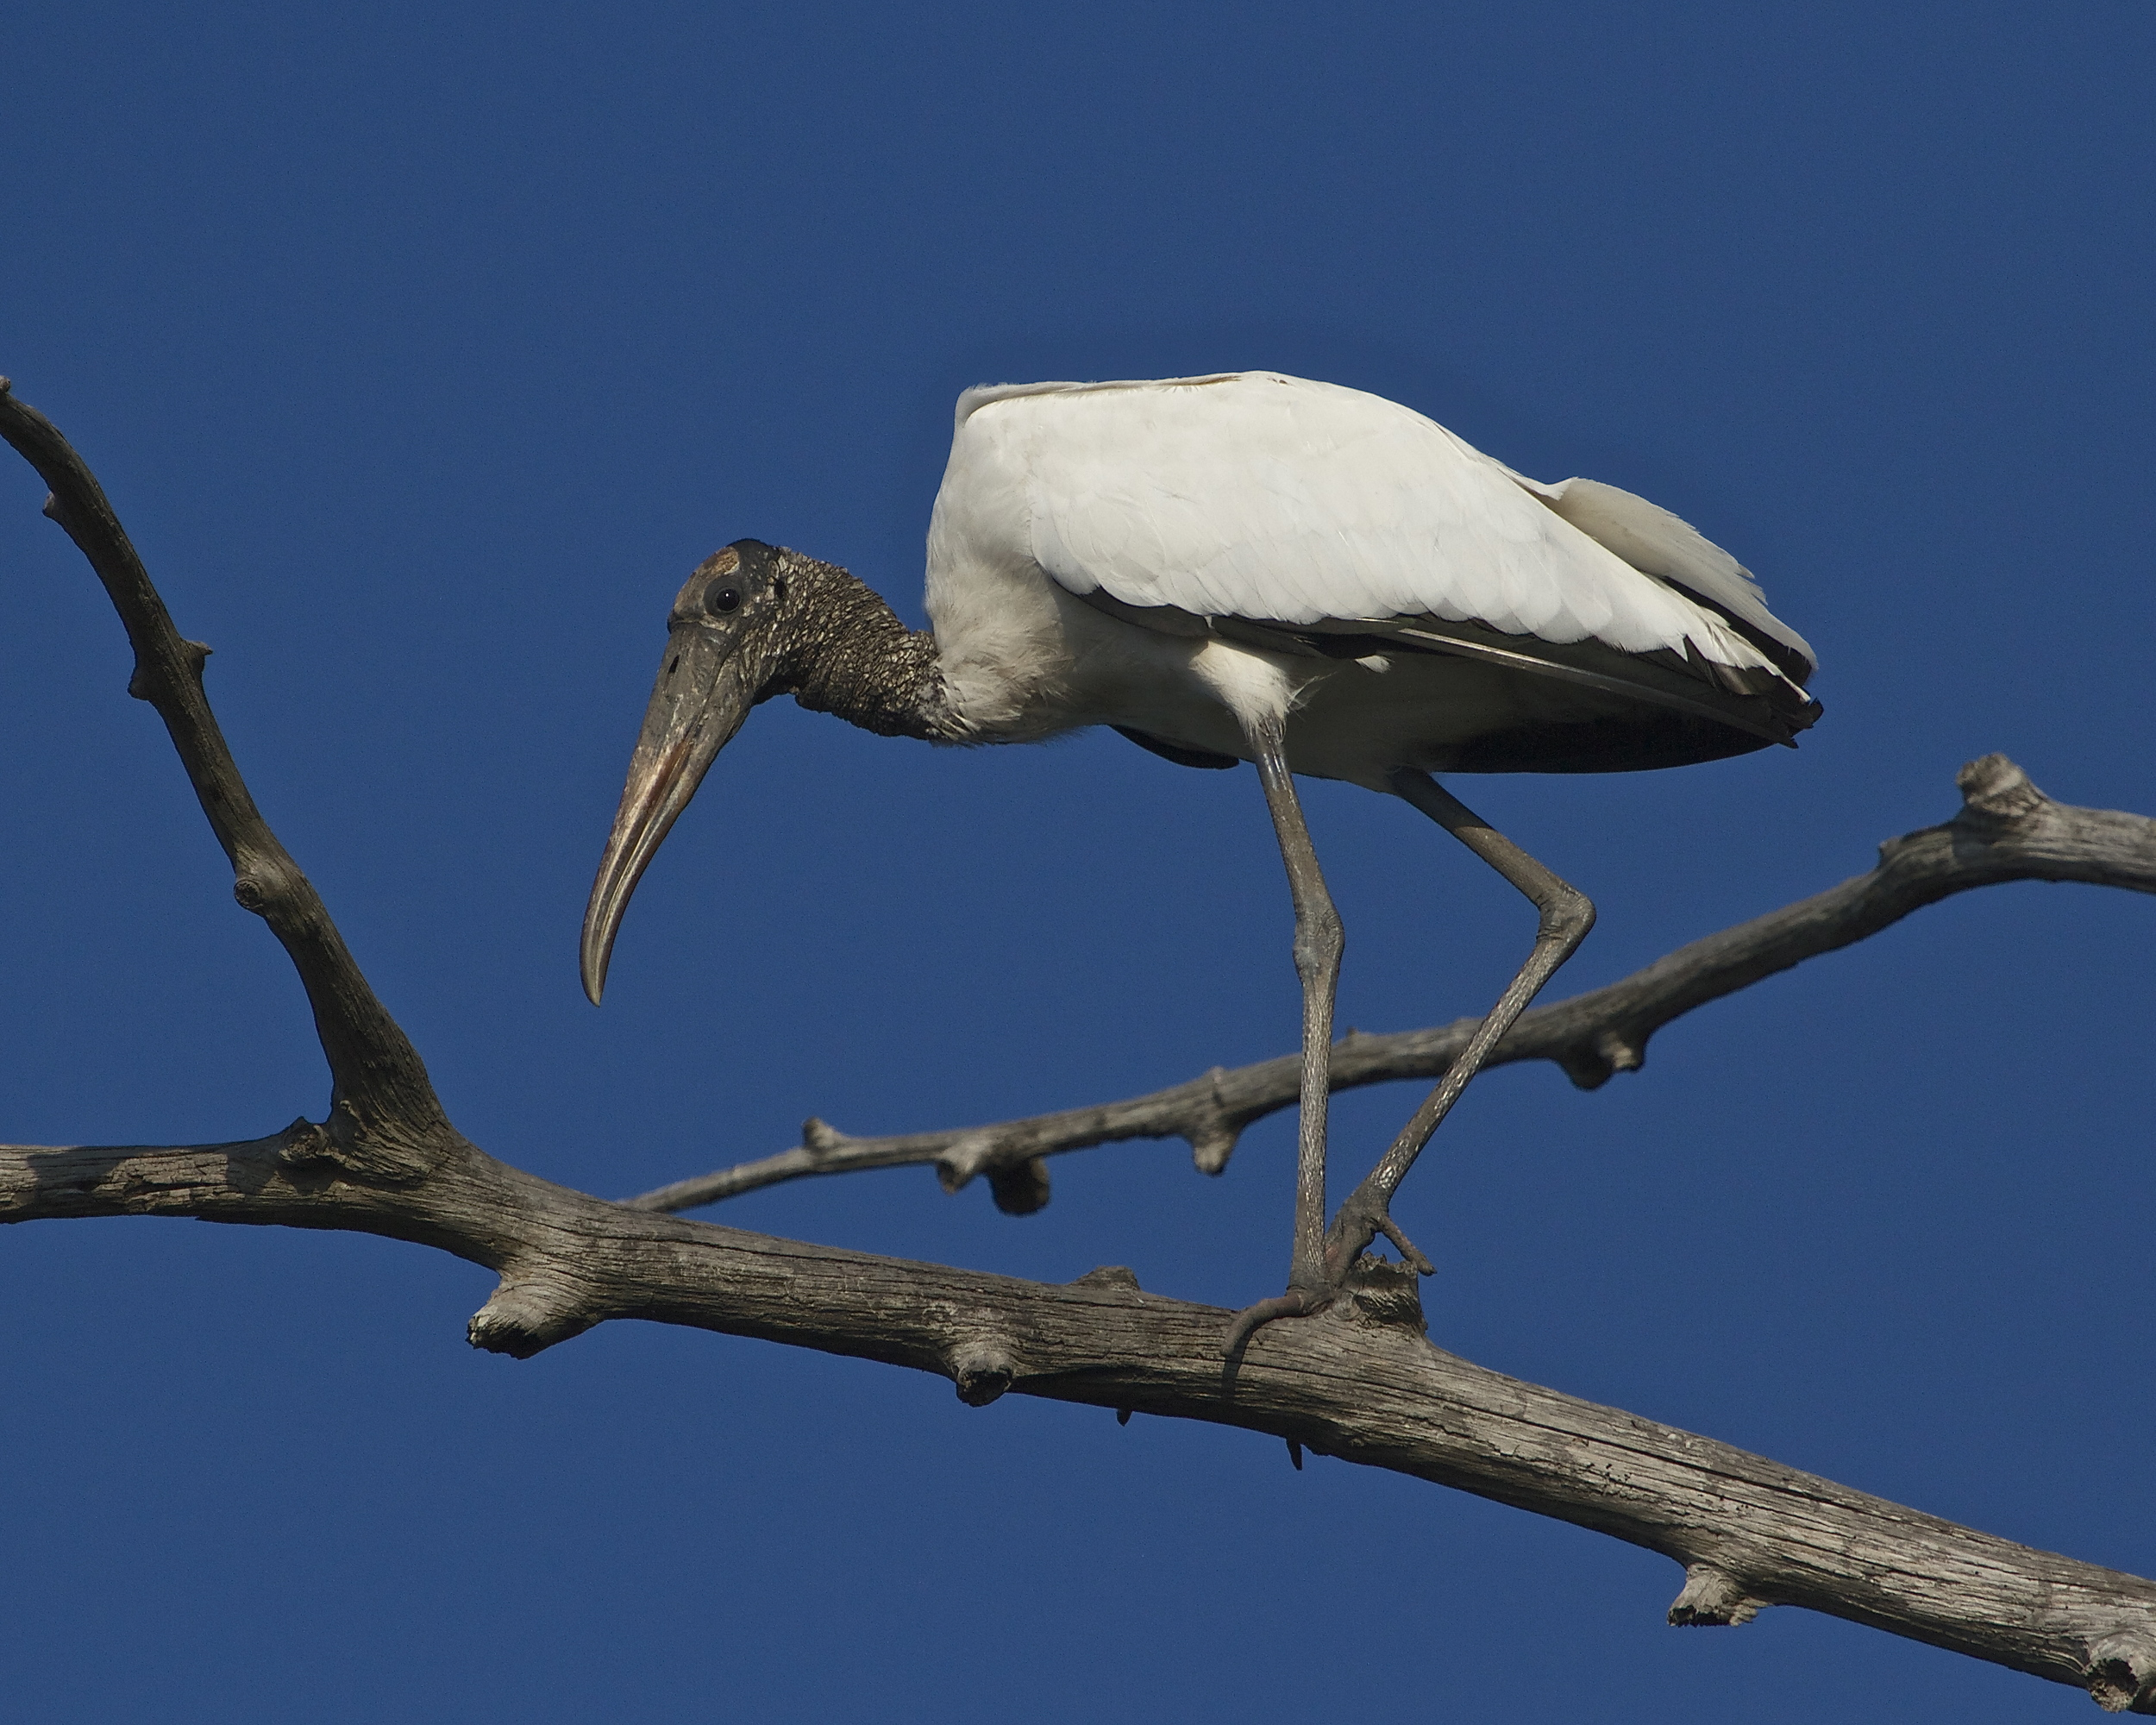 "Just like the desert buzzard ..."" Patience Hell, I want to kill something ""  is the look on the Wood Stork's face."